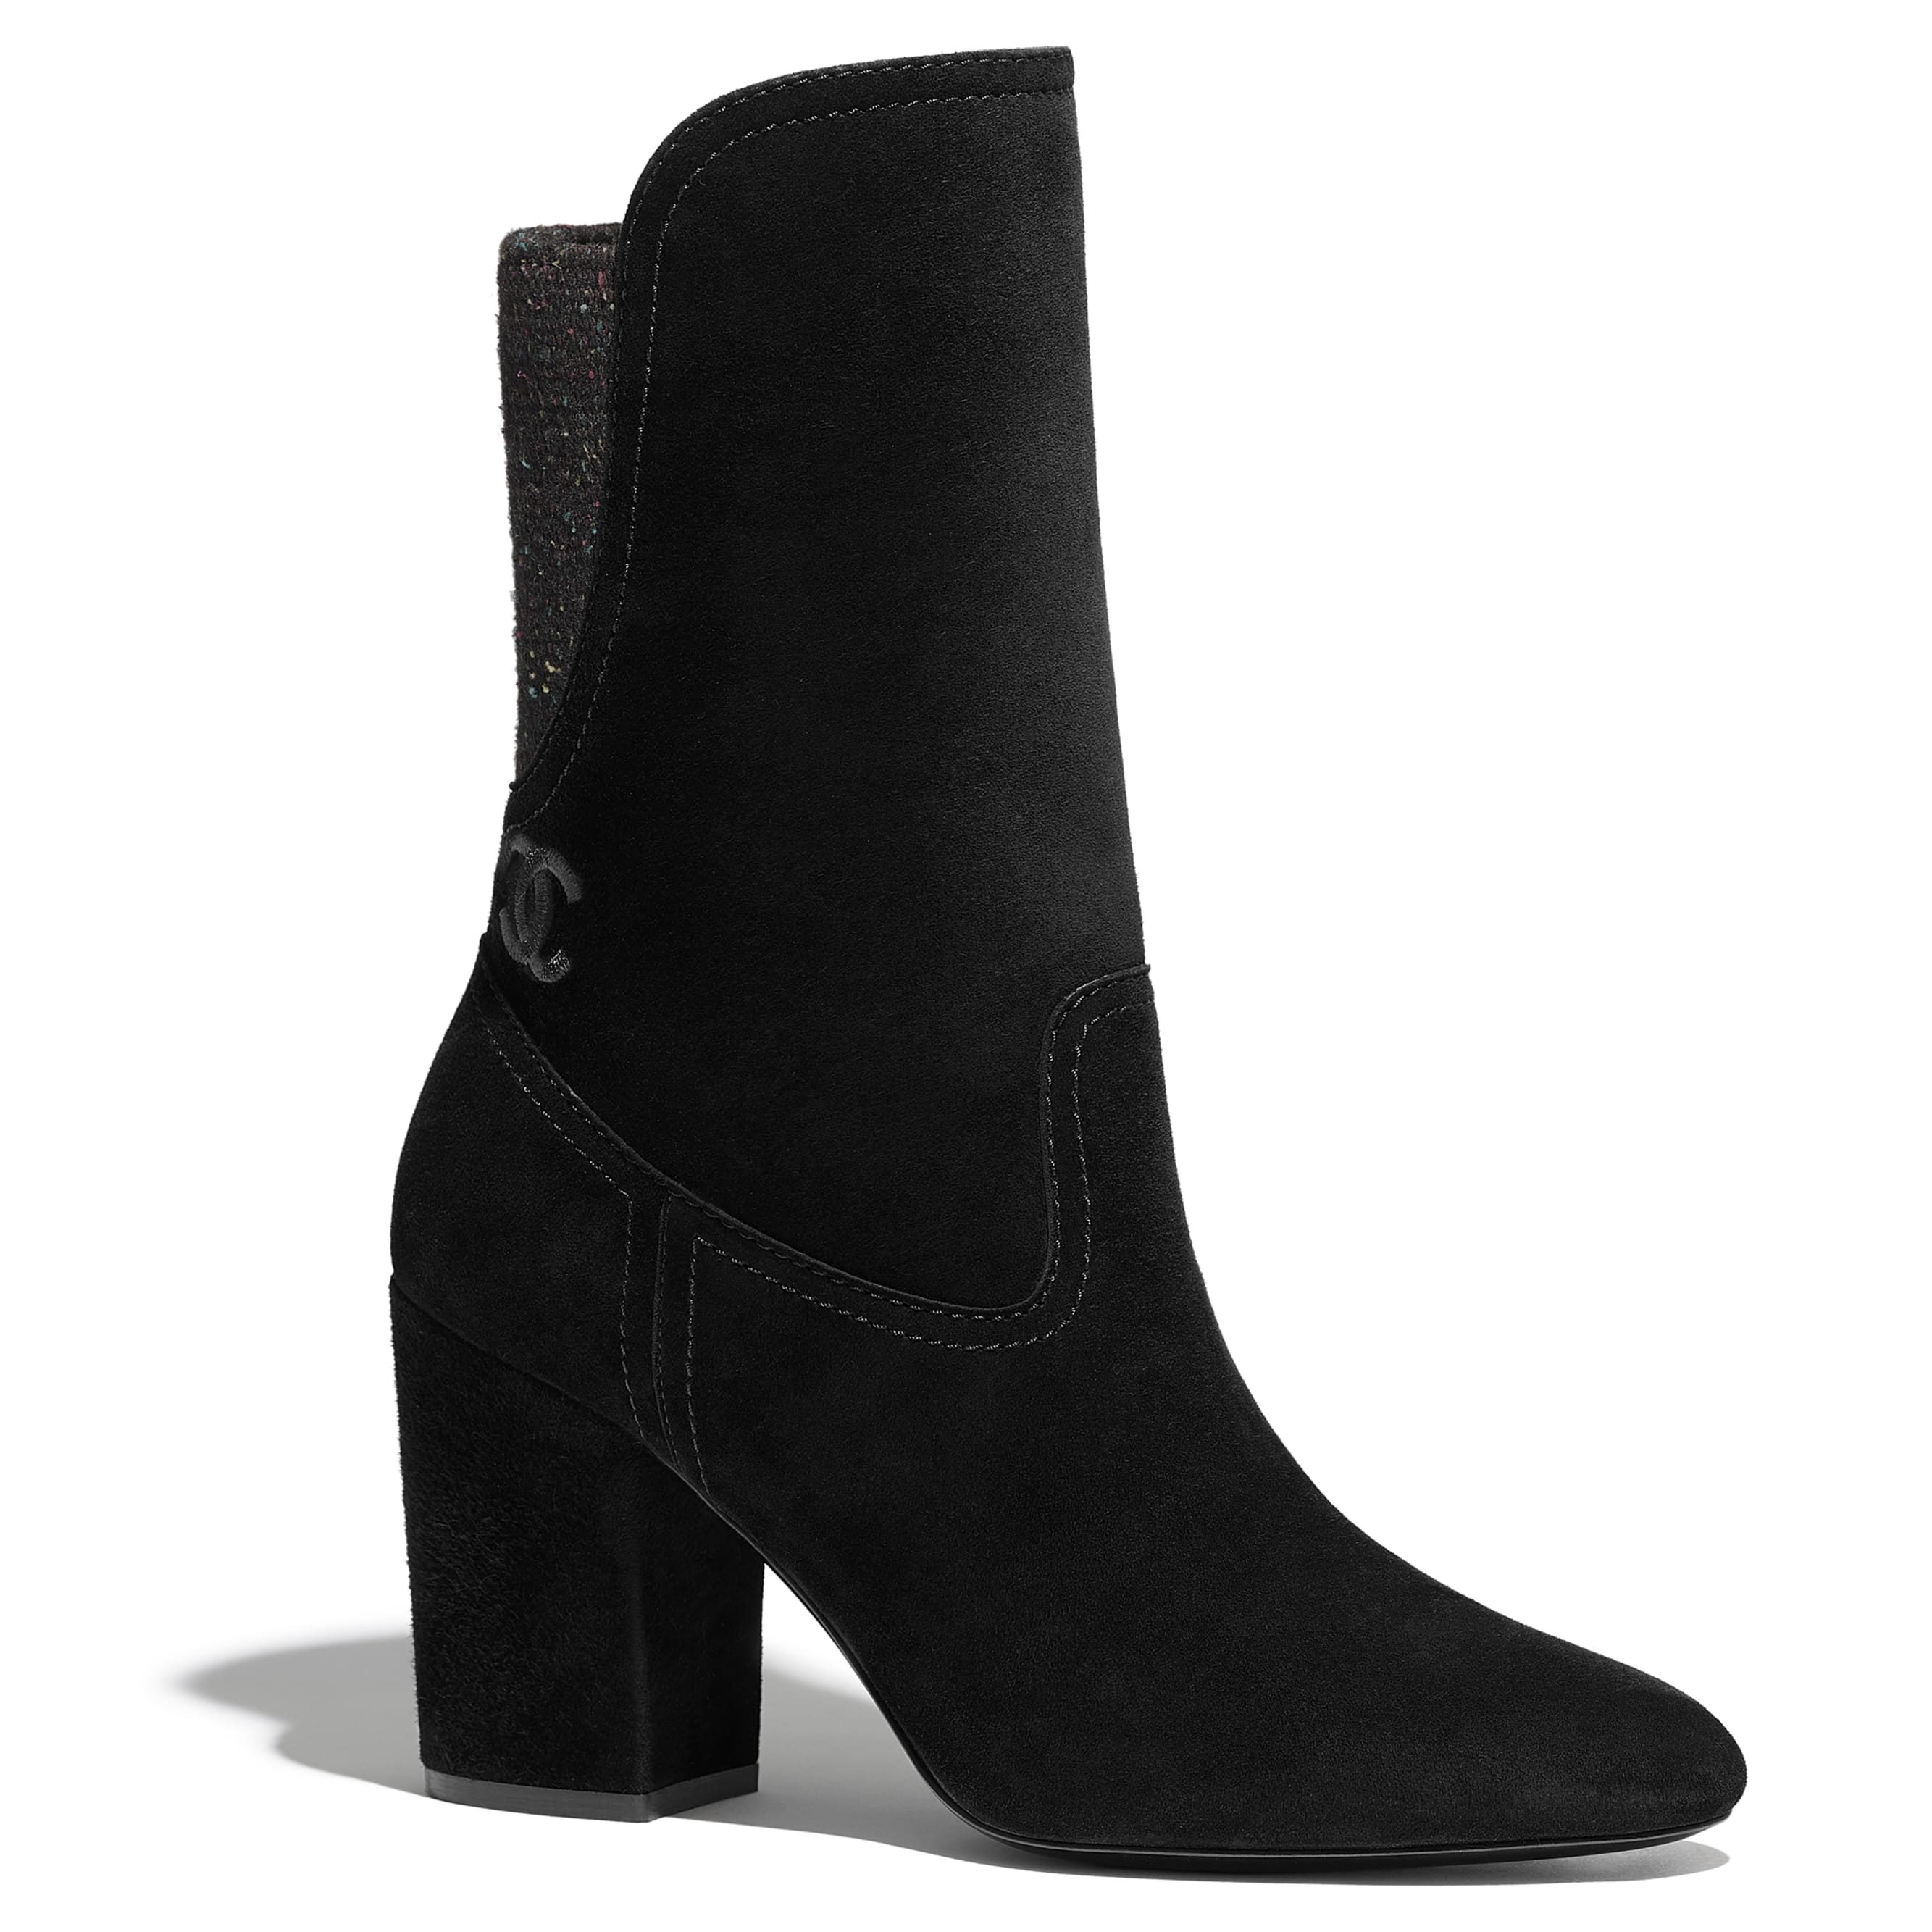 Ankle Boots - Black -  Velvet Calfskin & Mixed Fibers - Default view - see standard sized version